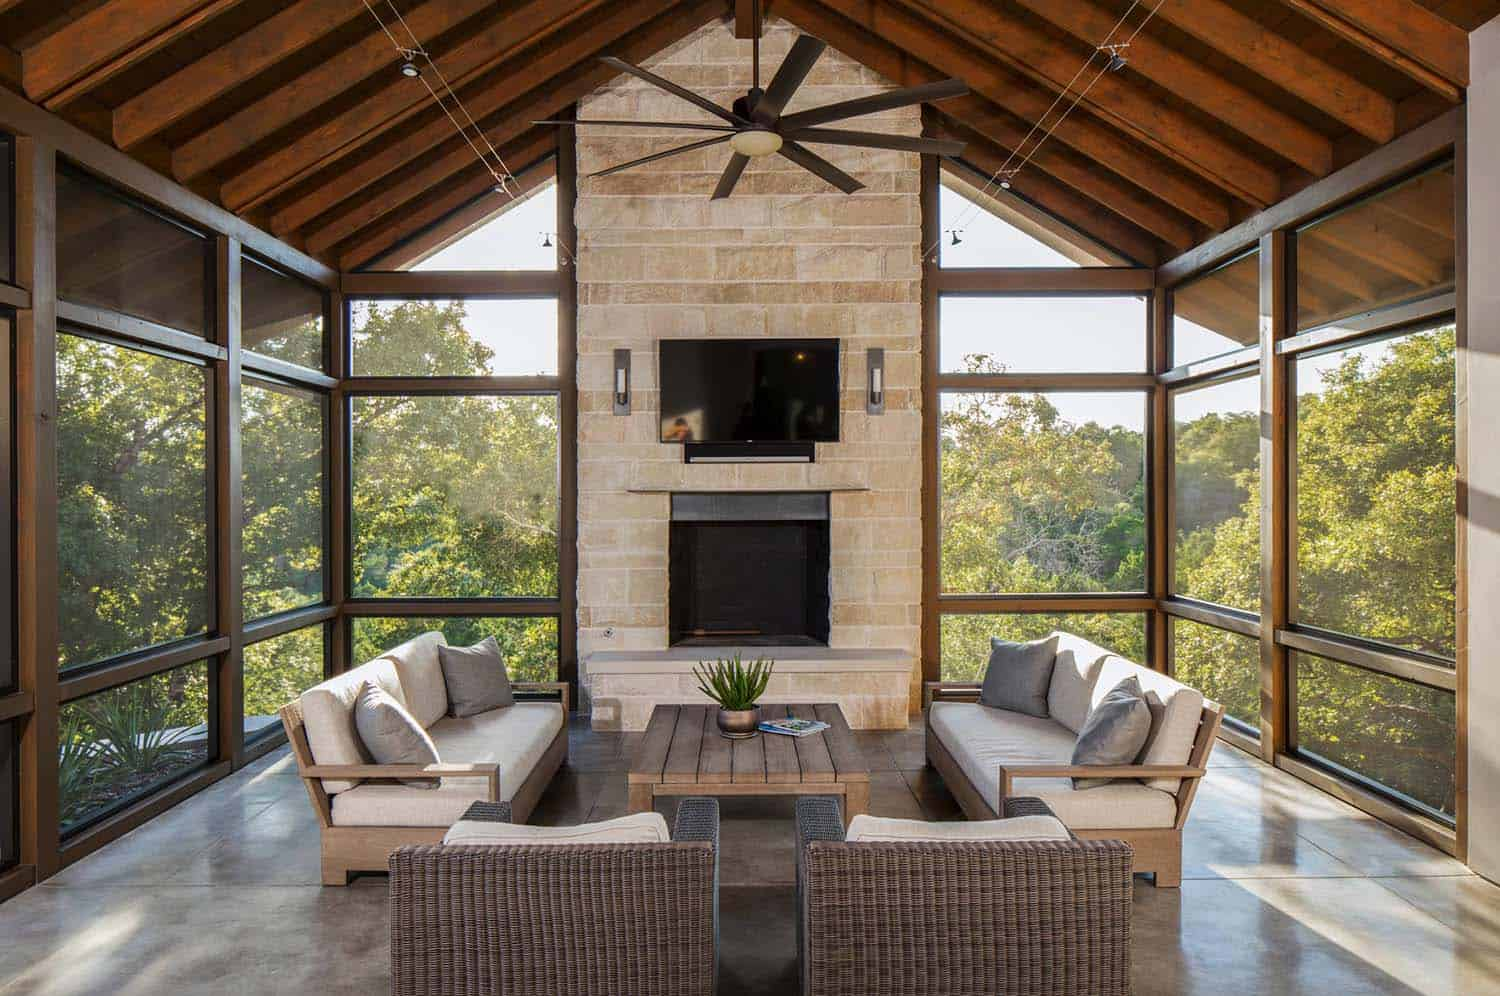 38 amazingly cozy and relaxing screened porch design ideas for Houses with screened in porches